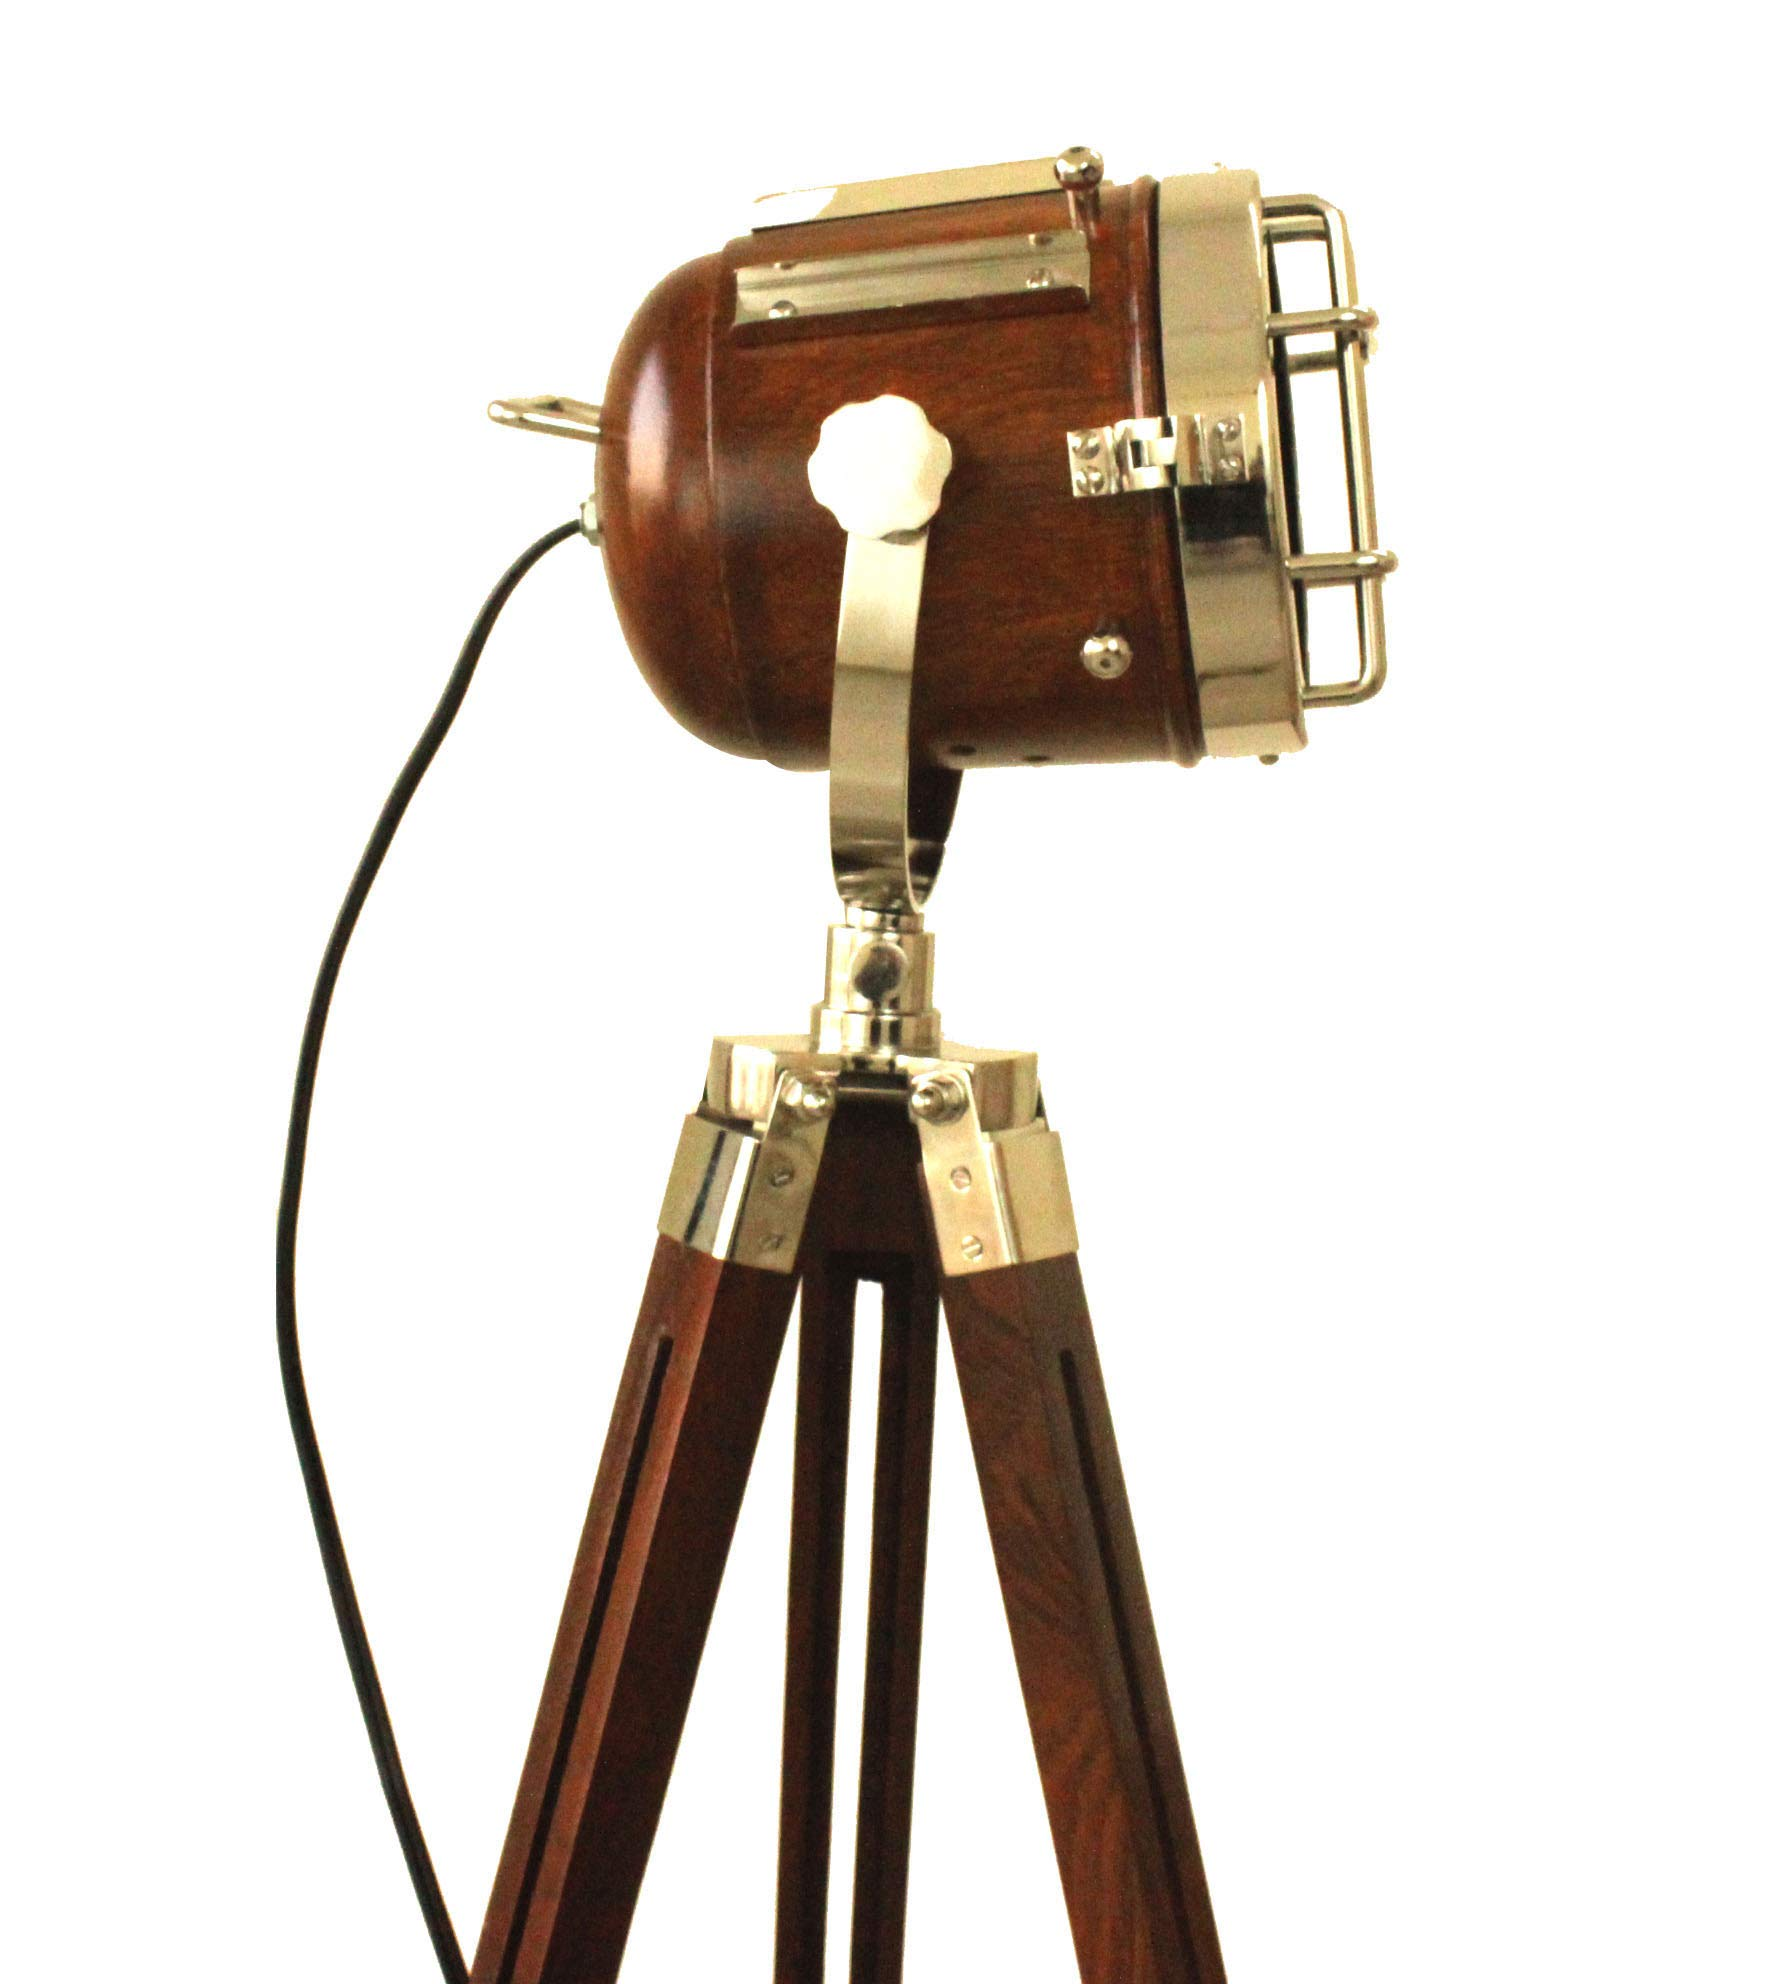 Vintage Searchlight Marine Nautical Look Spotlight Retro Brown Wooden Tripod Searchlight